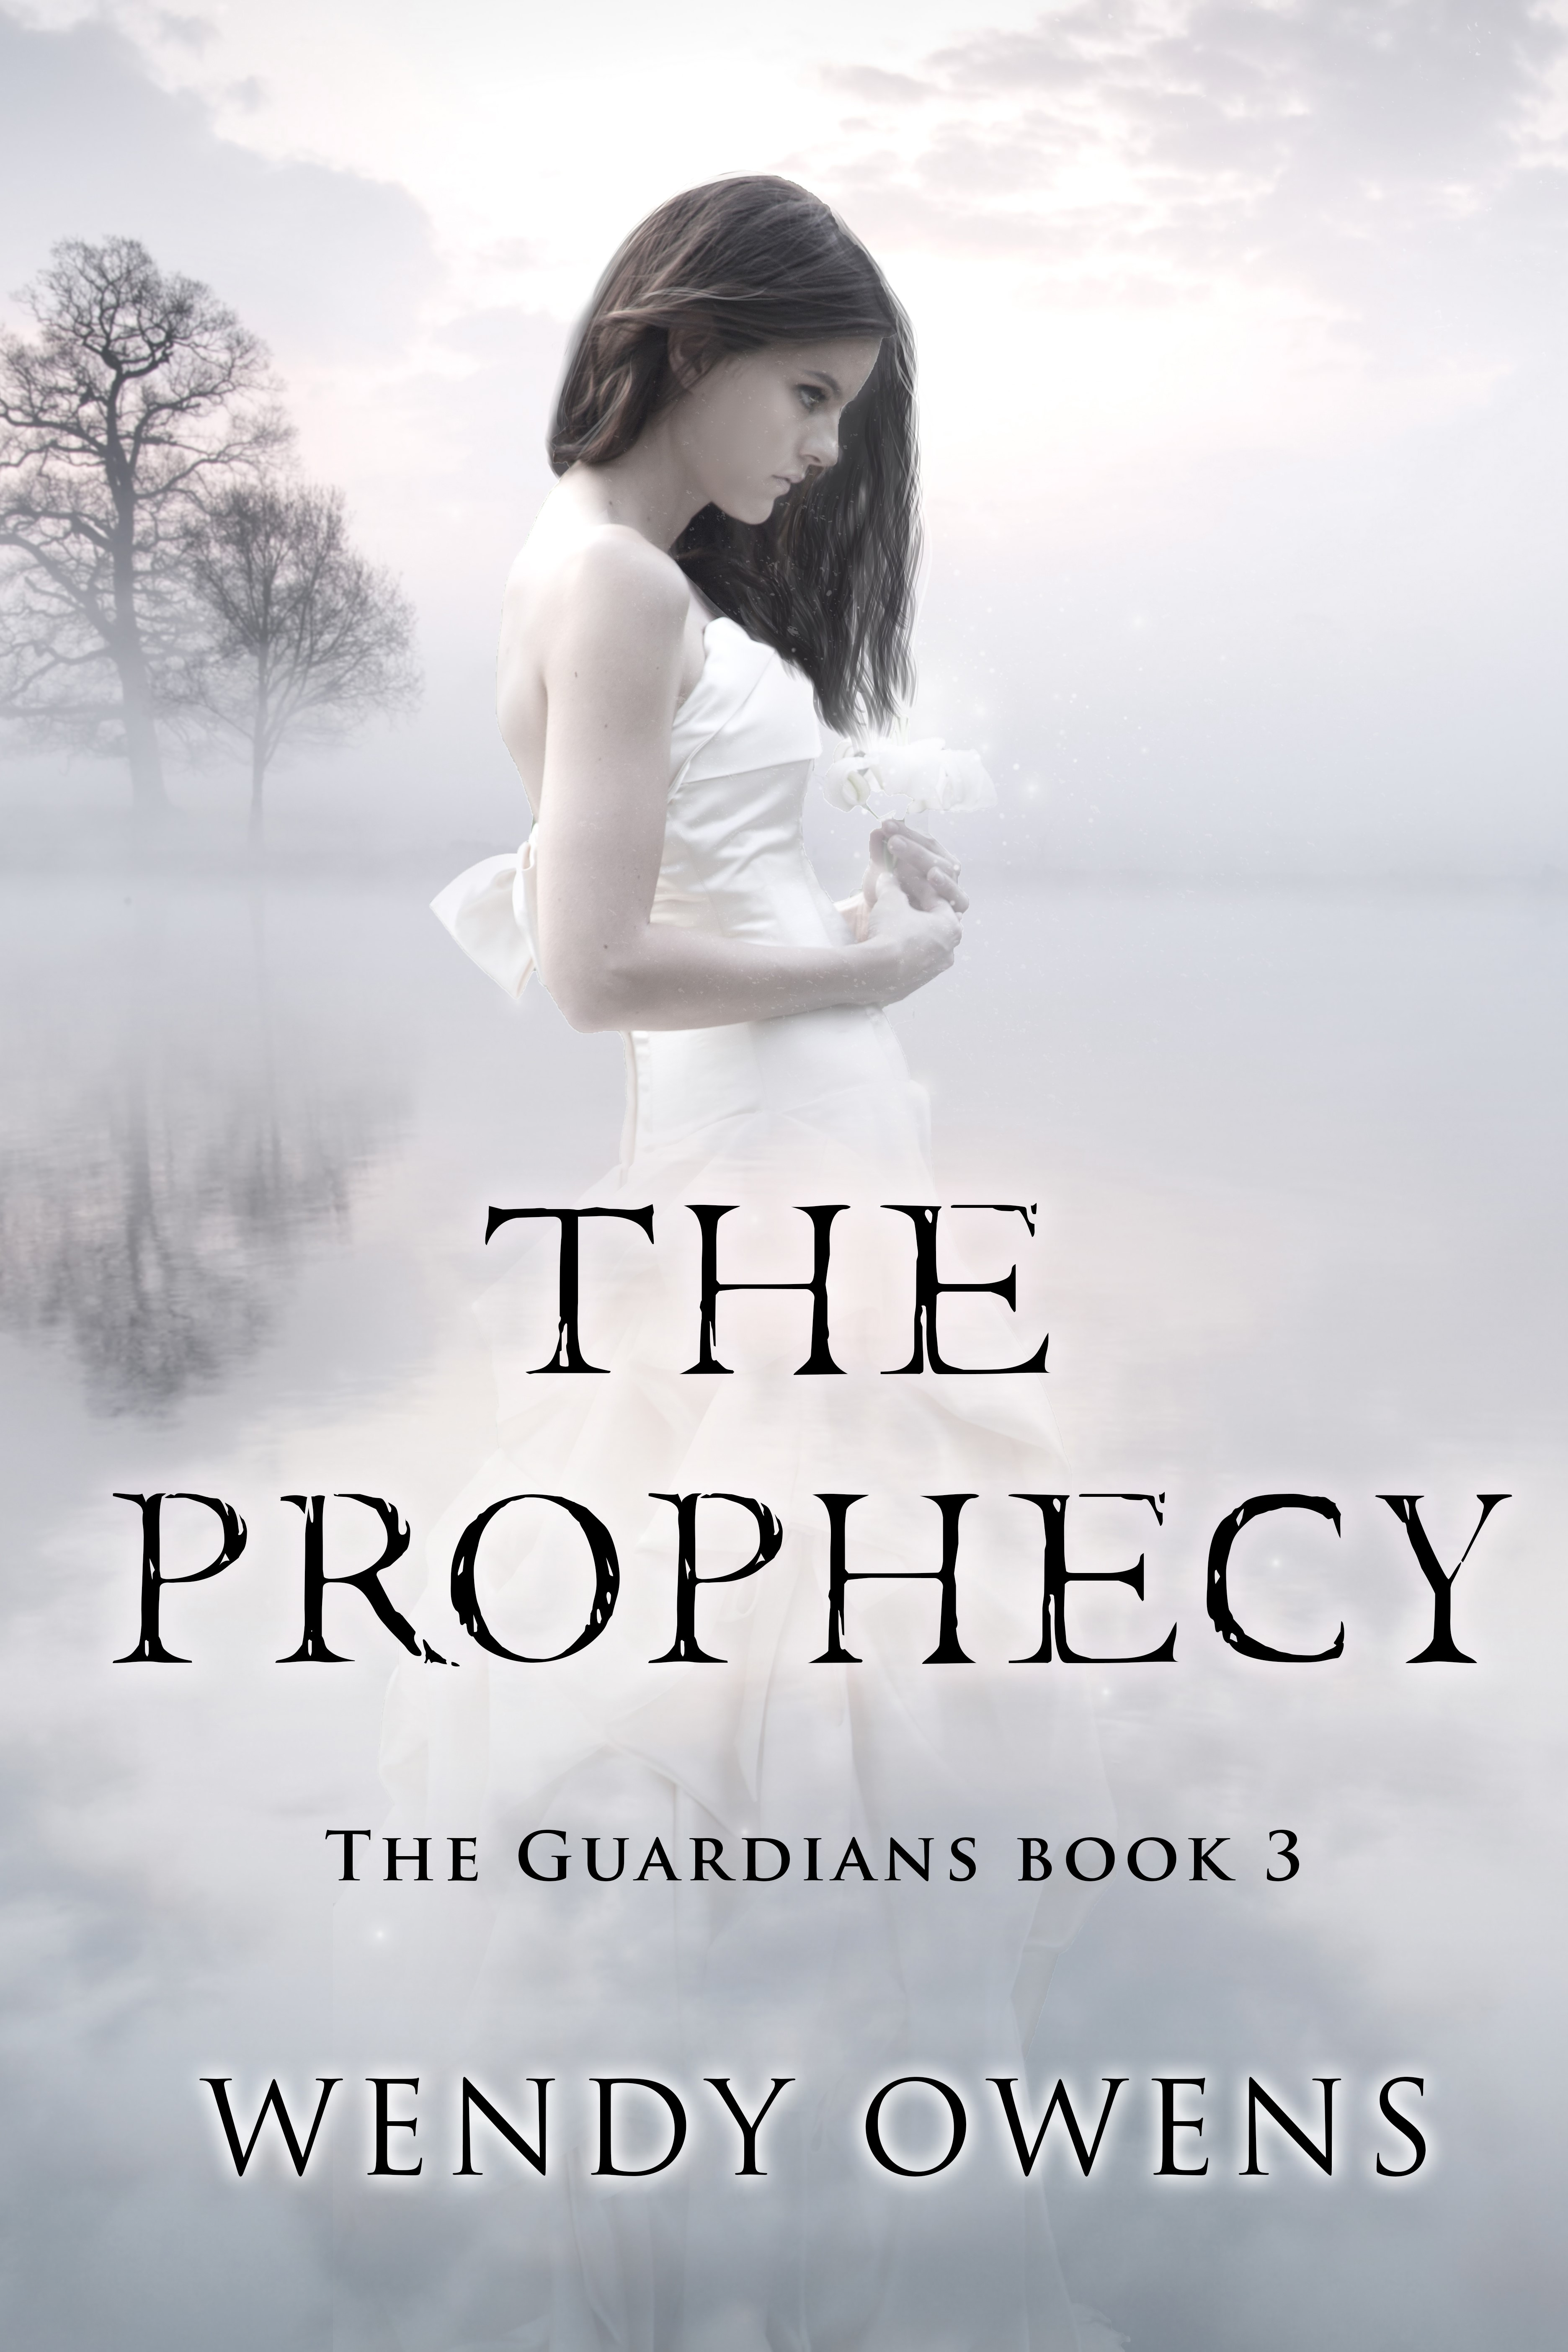 The Prophecy by Wendy Owens